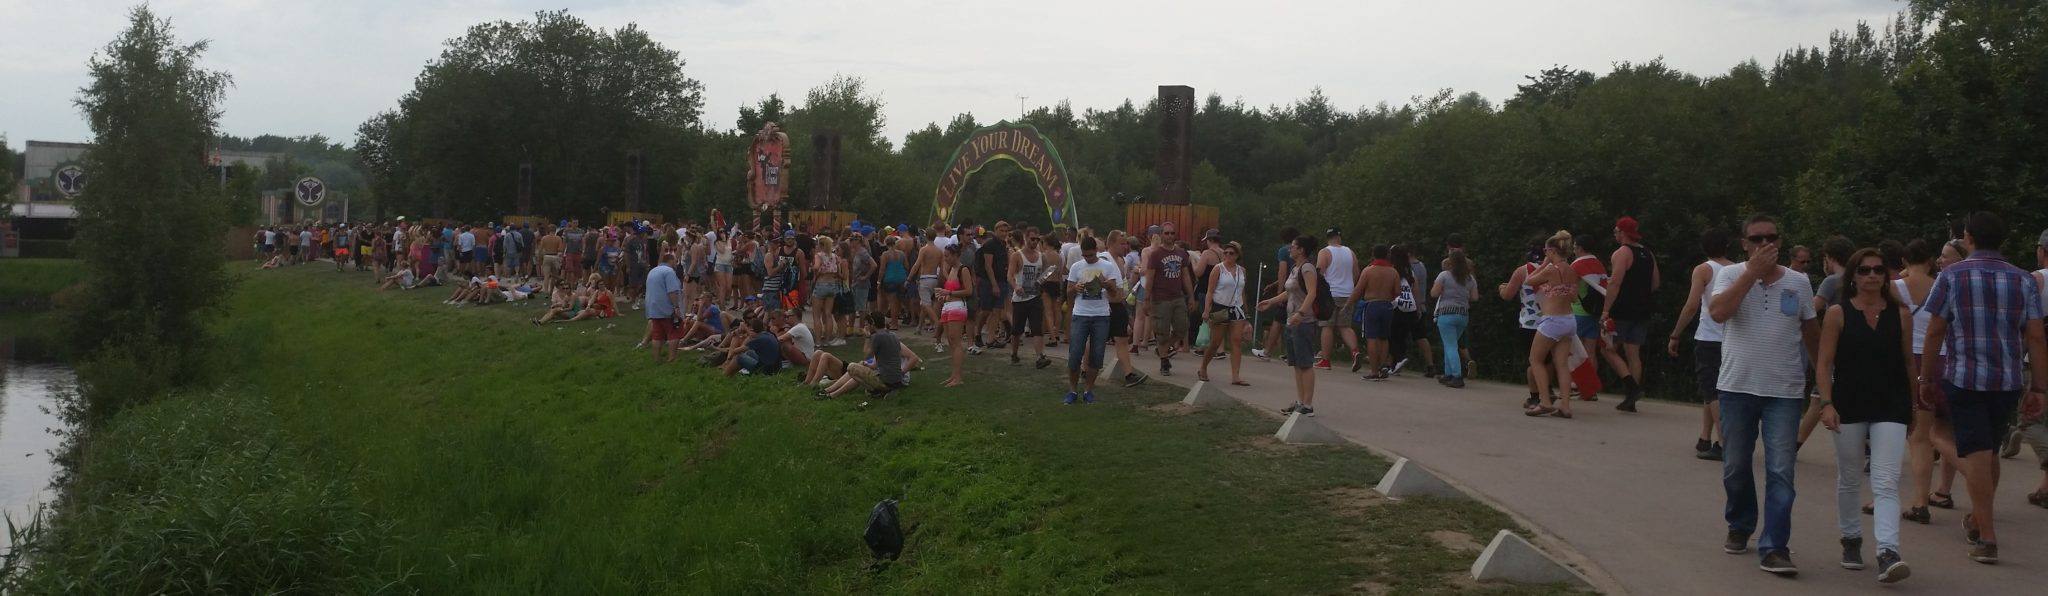 Tomorrowland cesta